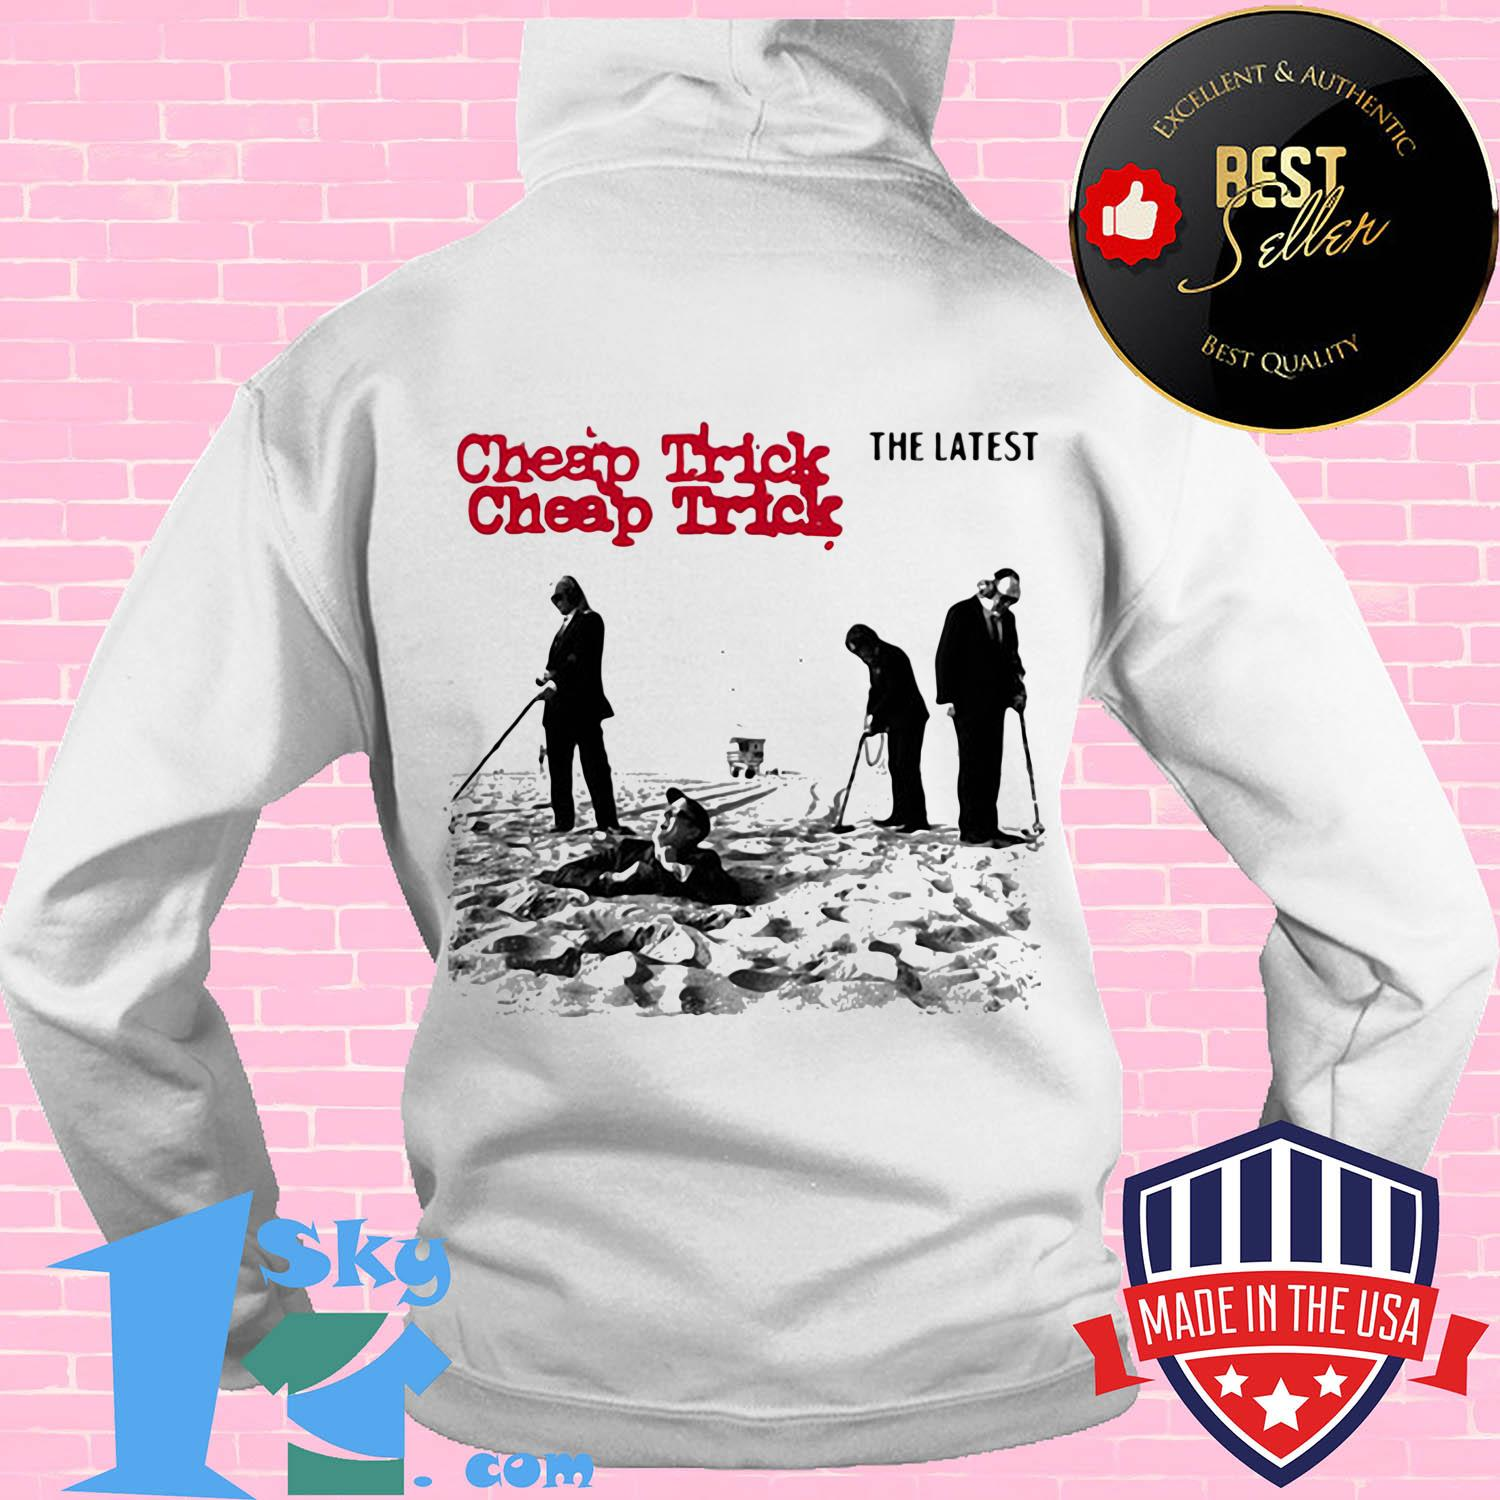 cheap trick the latest rock band hoodie - Cheap Trick The Latest Rock Band shirt